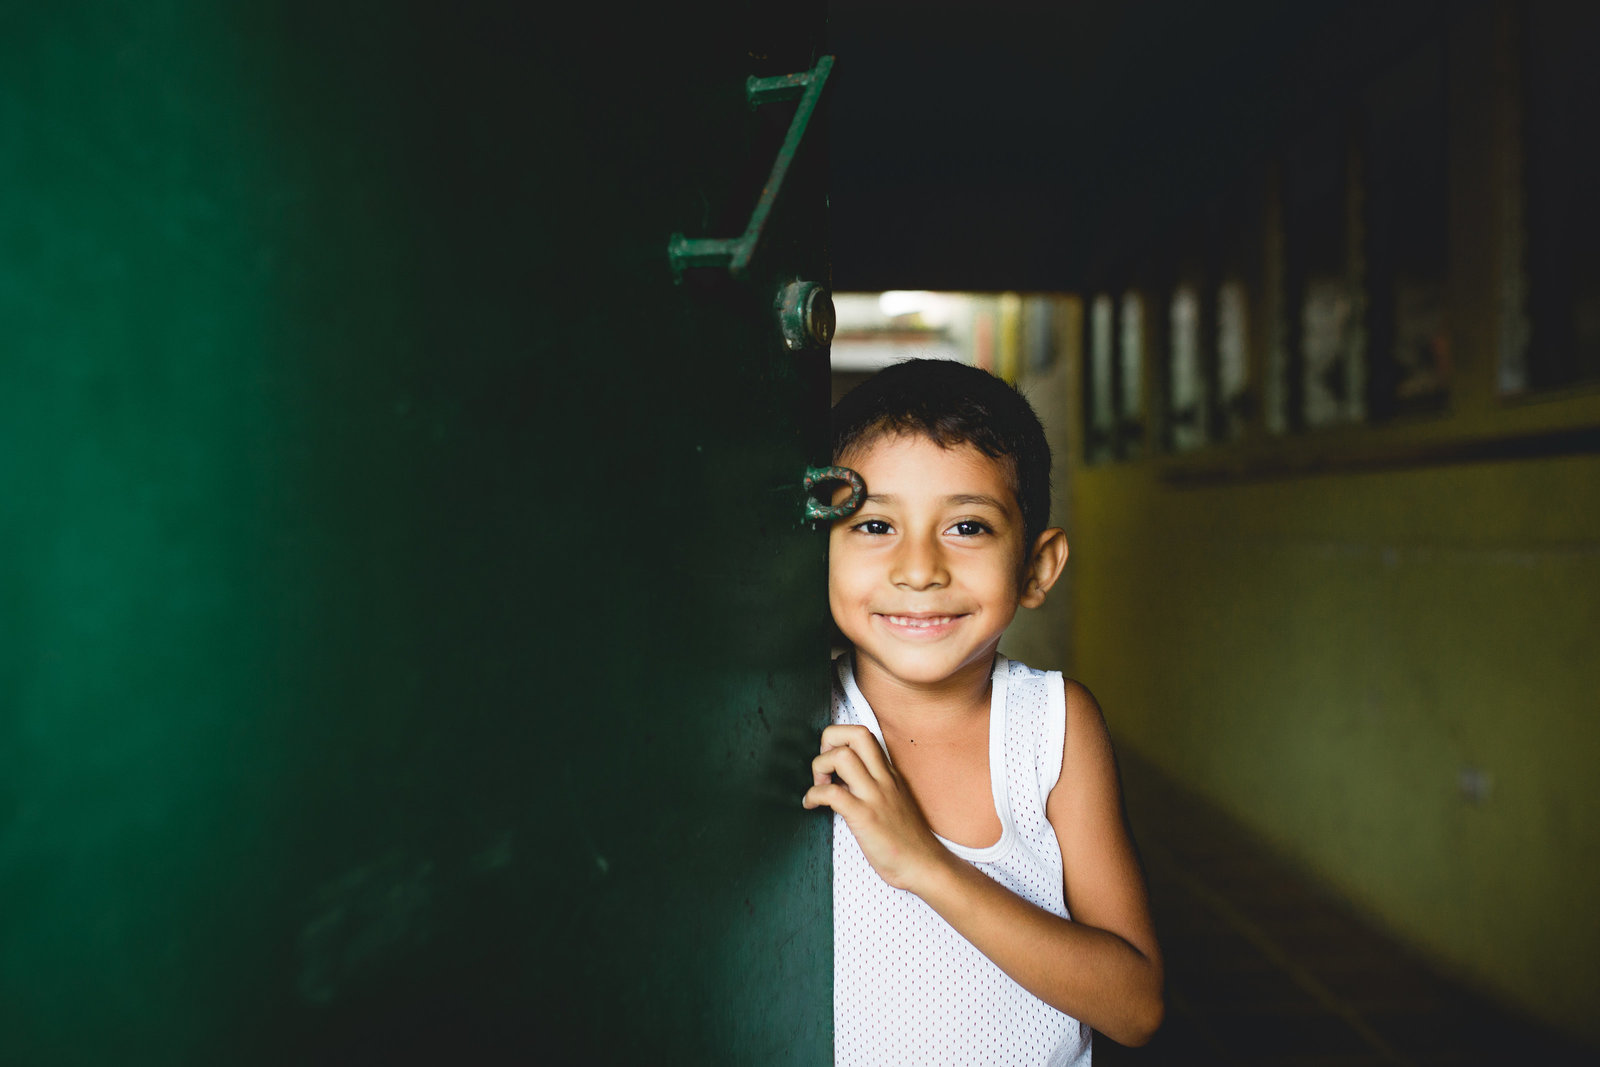 Trip to El Salvador Central America to document Esperanza. Photojournalism by Adore Wedding Photography